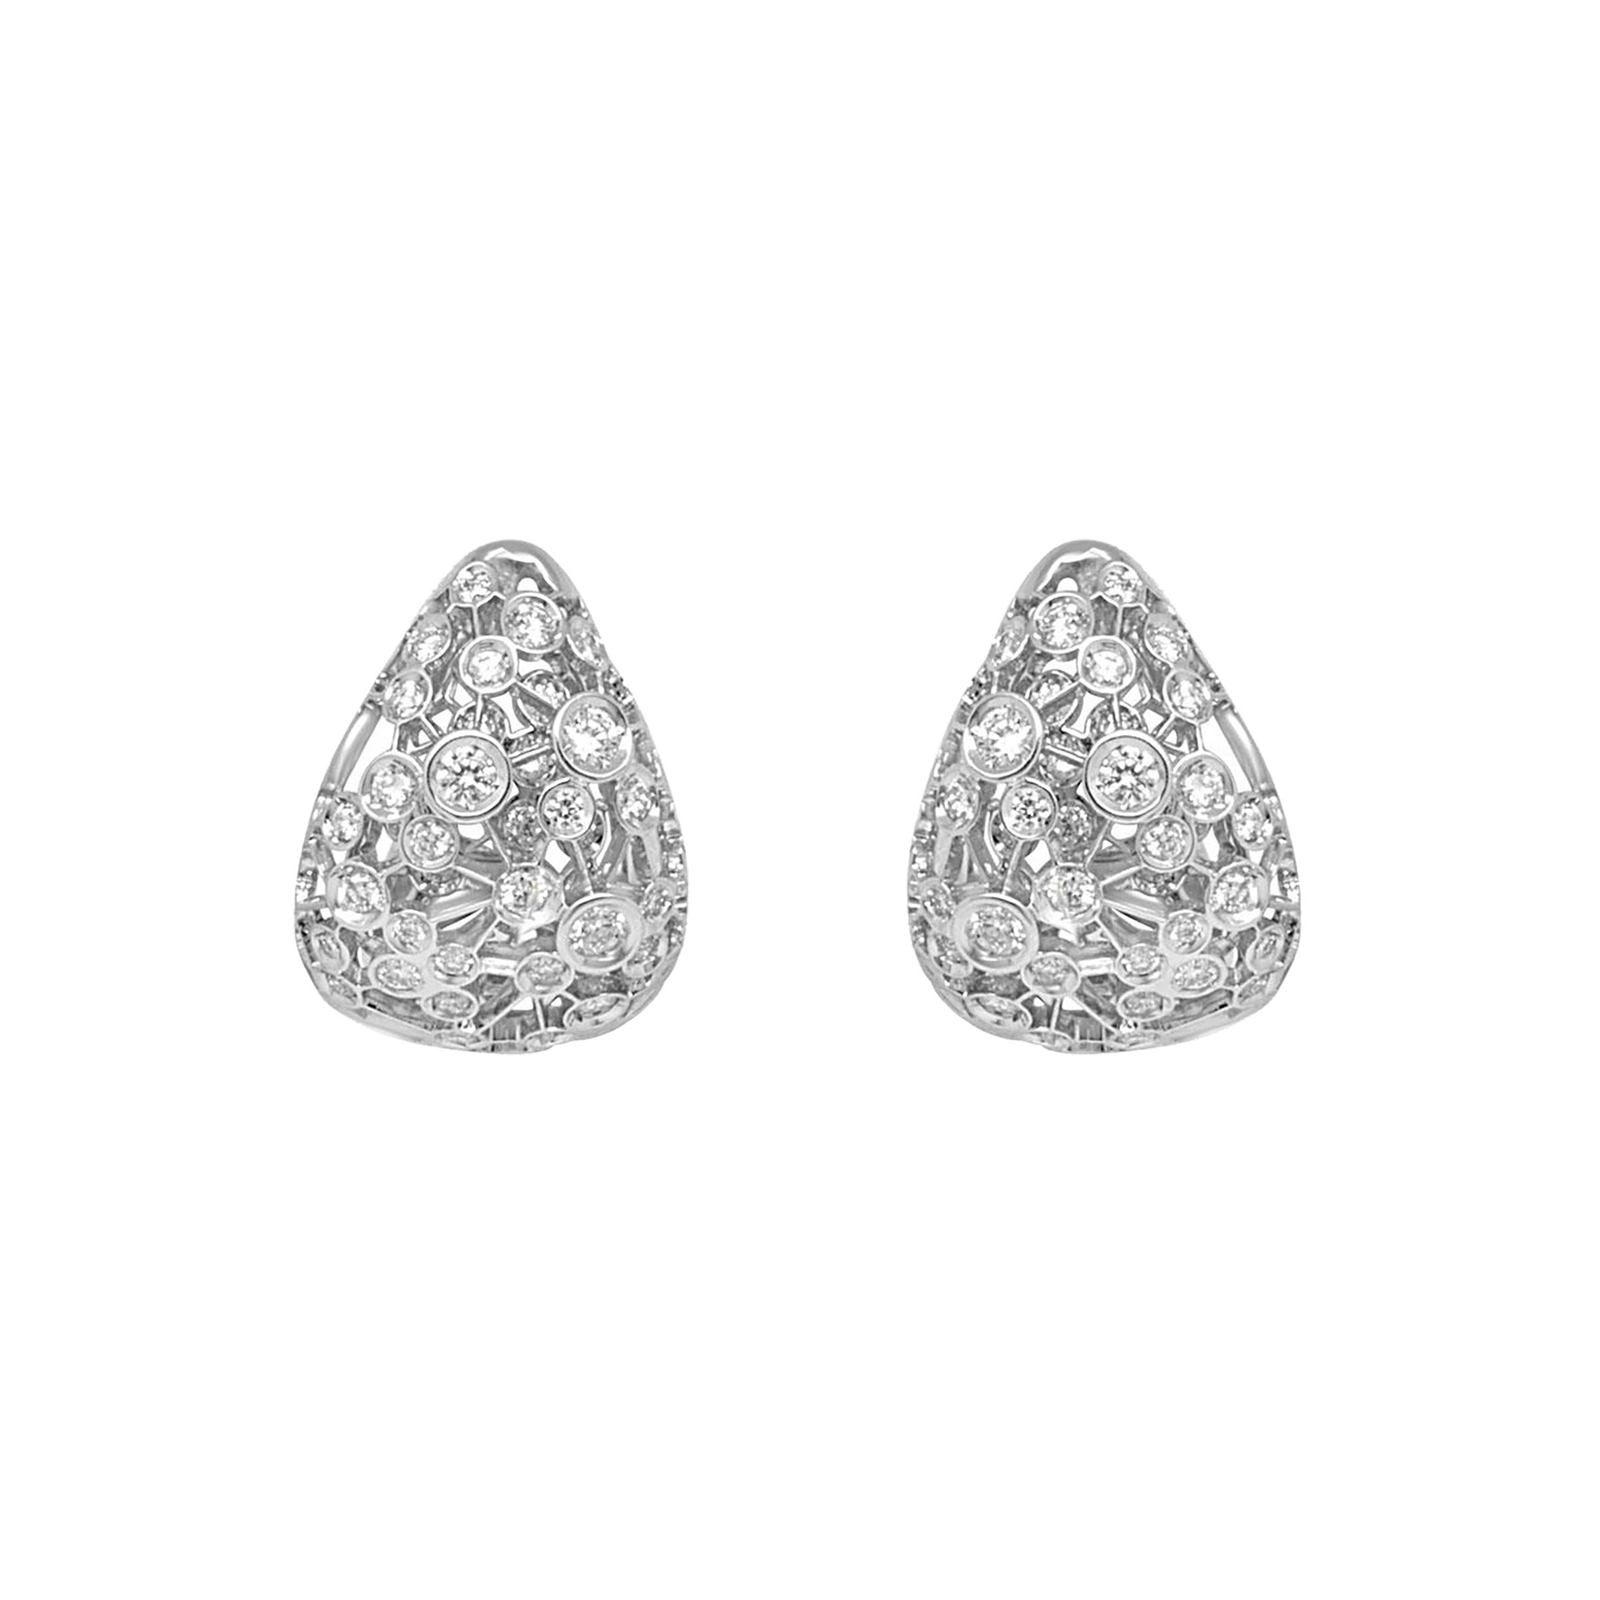 Damiani Via Lattea 18ct White Gold 1.14cttw Diamond Stud Earrings